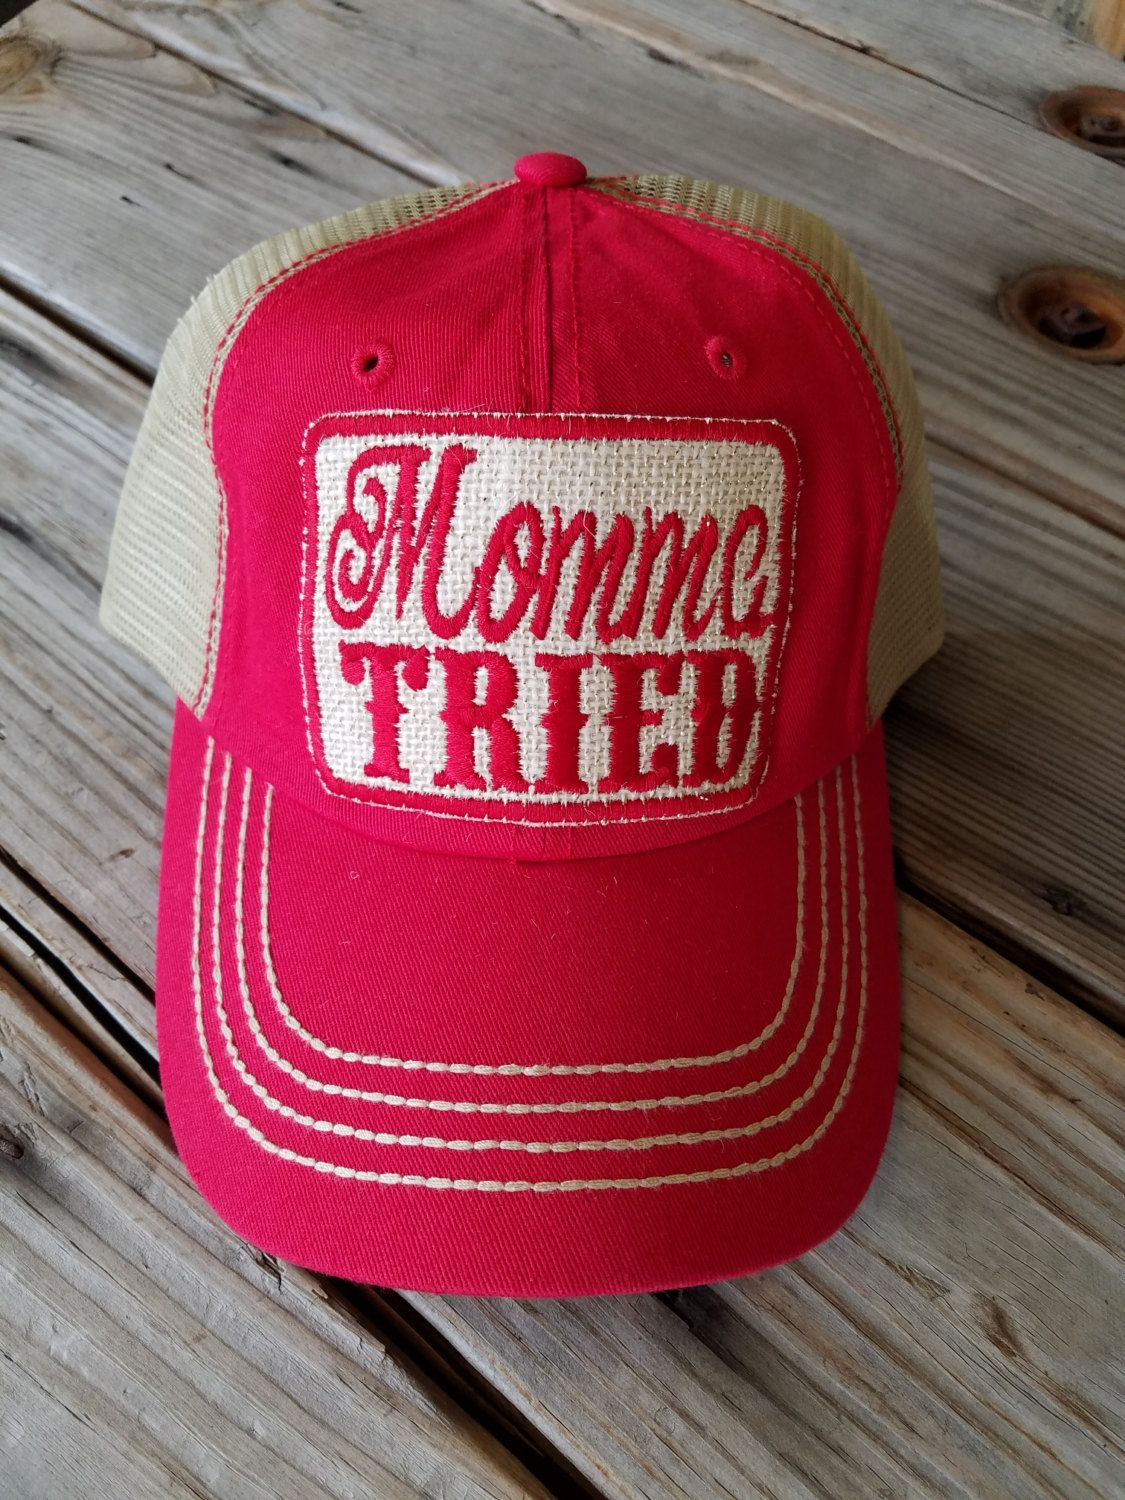 Momma Tried Trucker Hat With Patch Hadmade Patch Womens Hat Womens Cap Boutique Hat By Gameongraphics On E Vintage Trucker Hats Cowgirl Hats Hats For Women